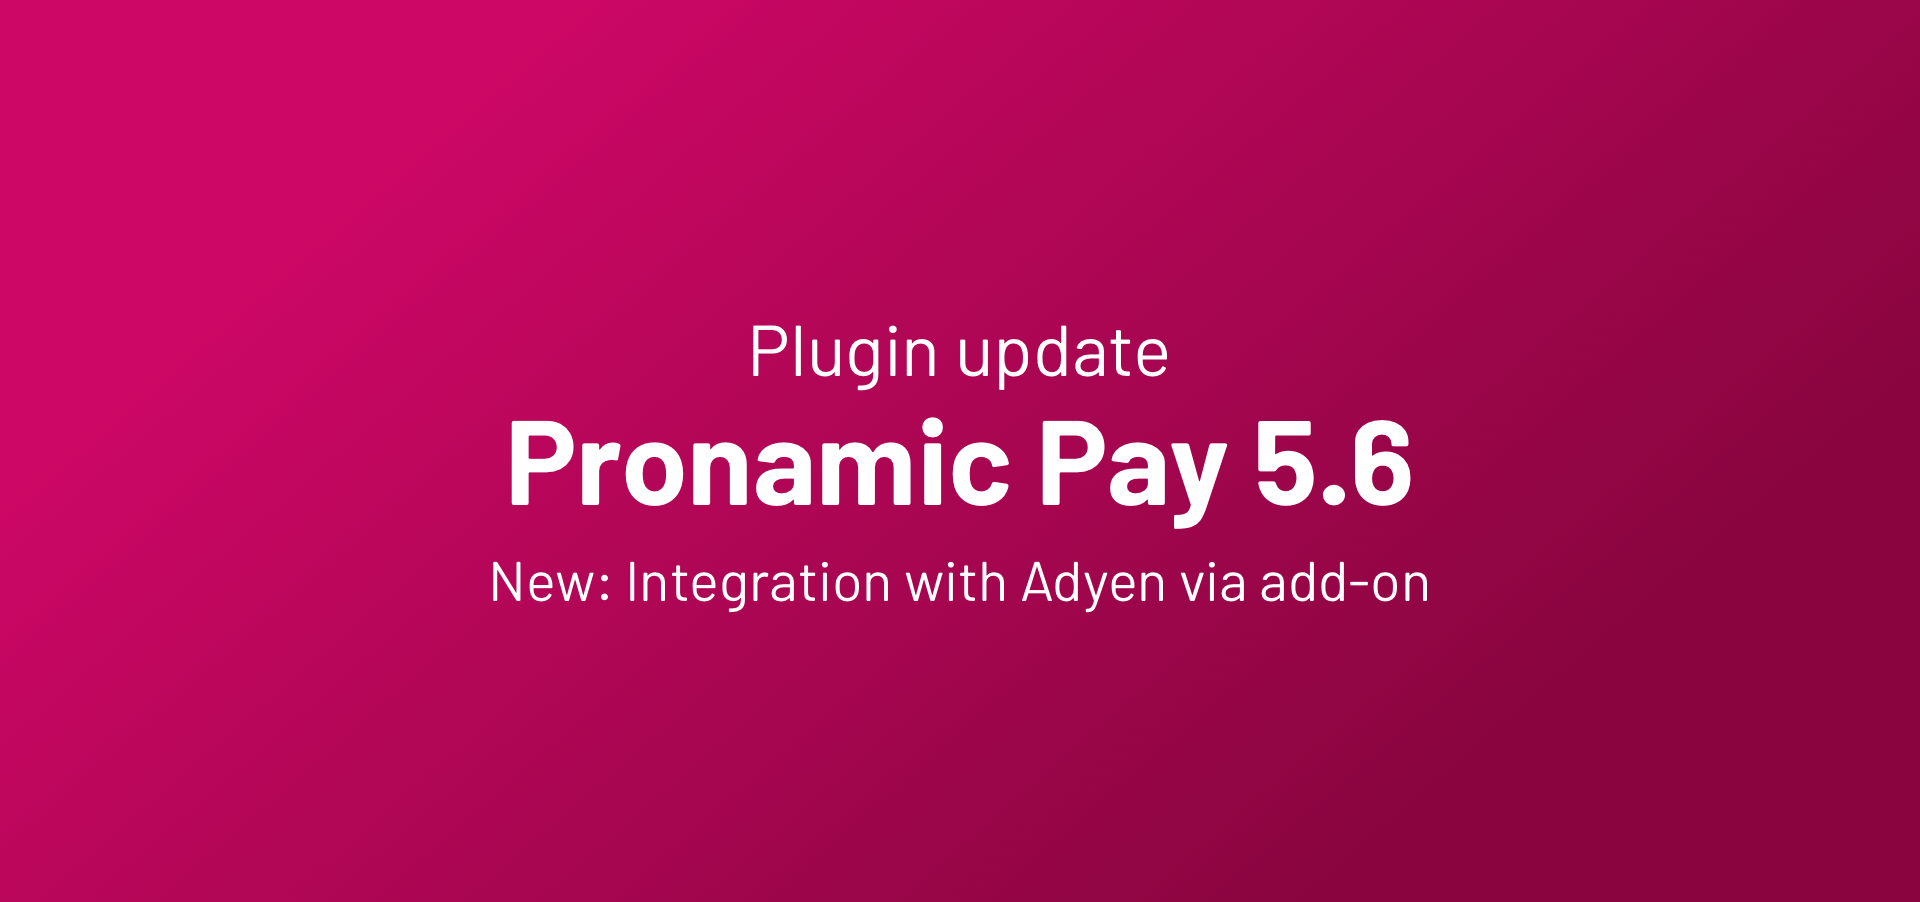 Pronamic Pay 5.6